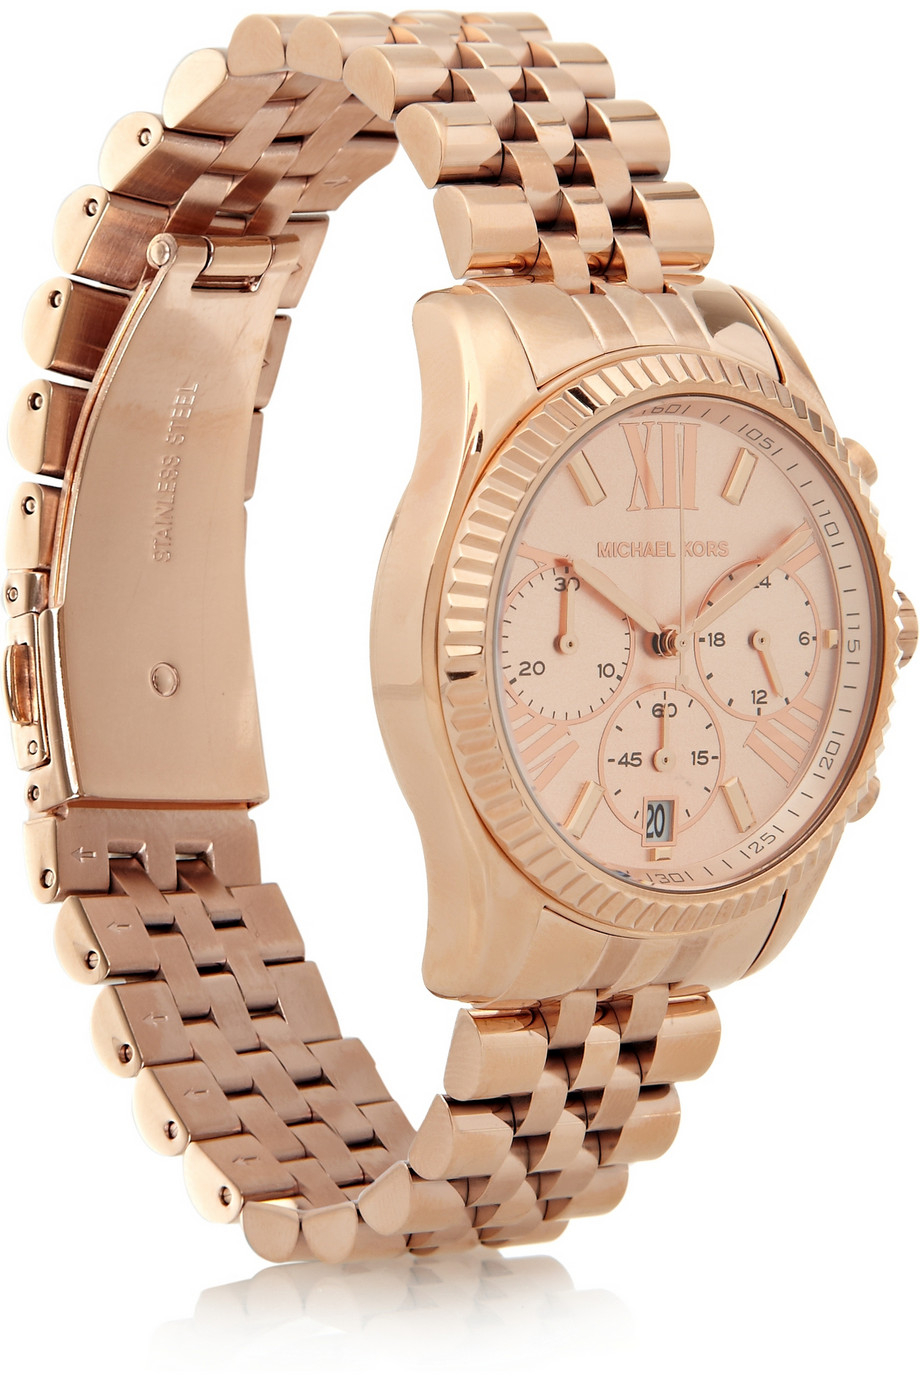 6c9fd8693495 Gallery. Previously sold at  NET-A-PORTER · Women s Gold Watches Women s Michael  Kors Lexington ...